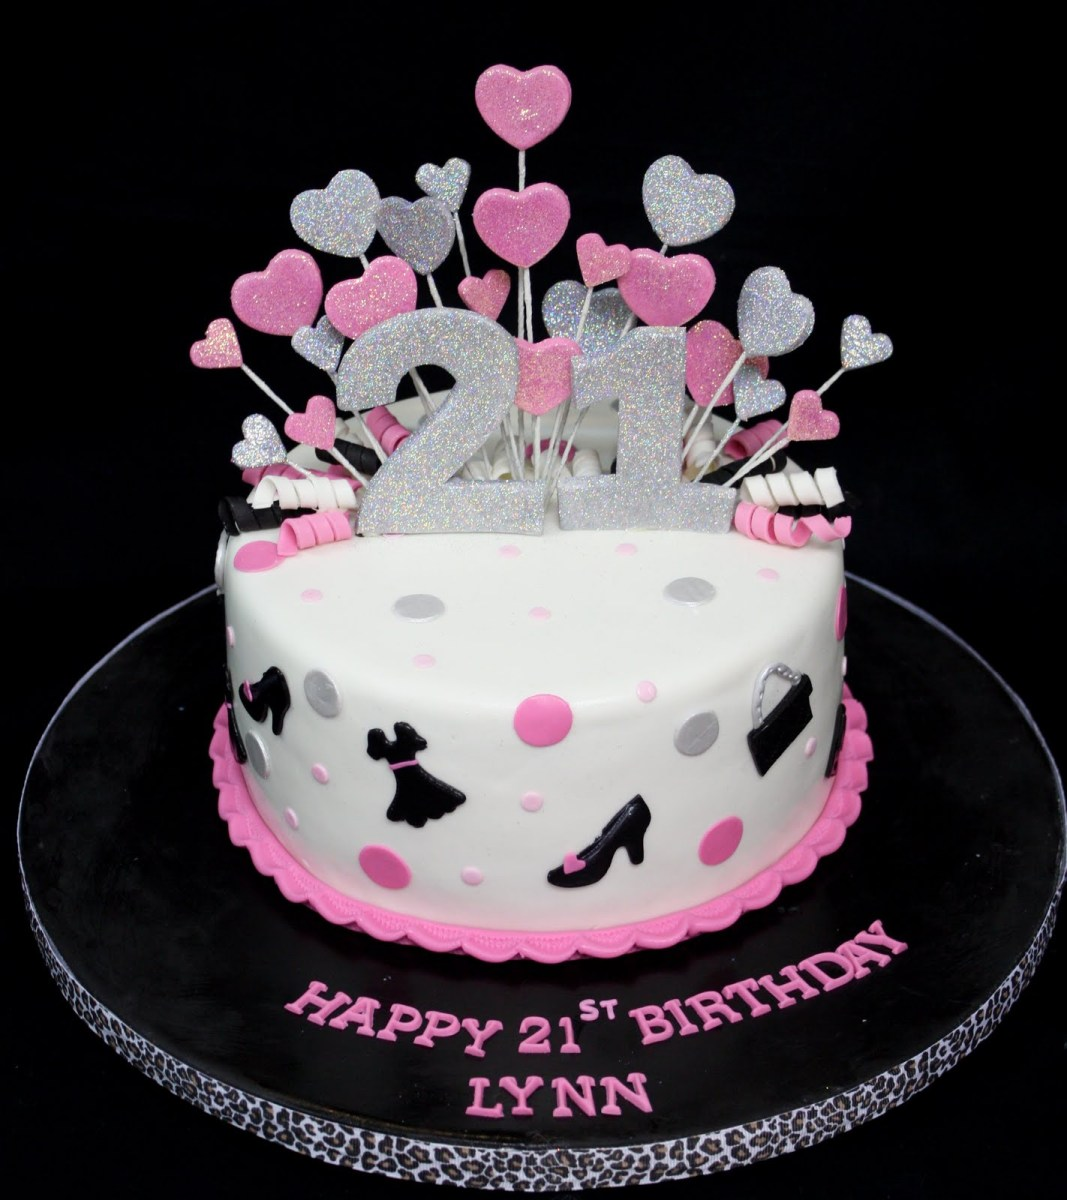 Awe Inspiring 21 Birthday Cakes For Her 21St Birthday Cakes Decoration Ideas Funny Birthday Cards Online Inifodamsfinfo